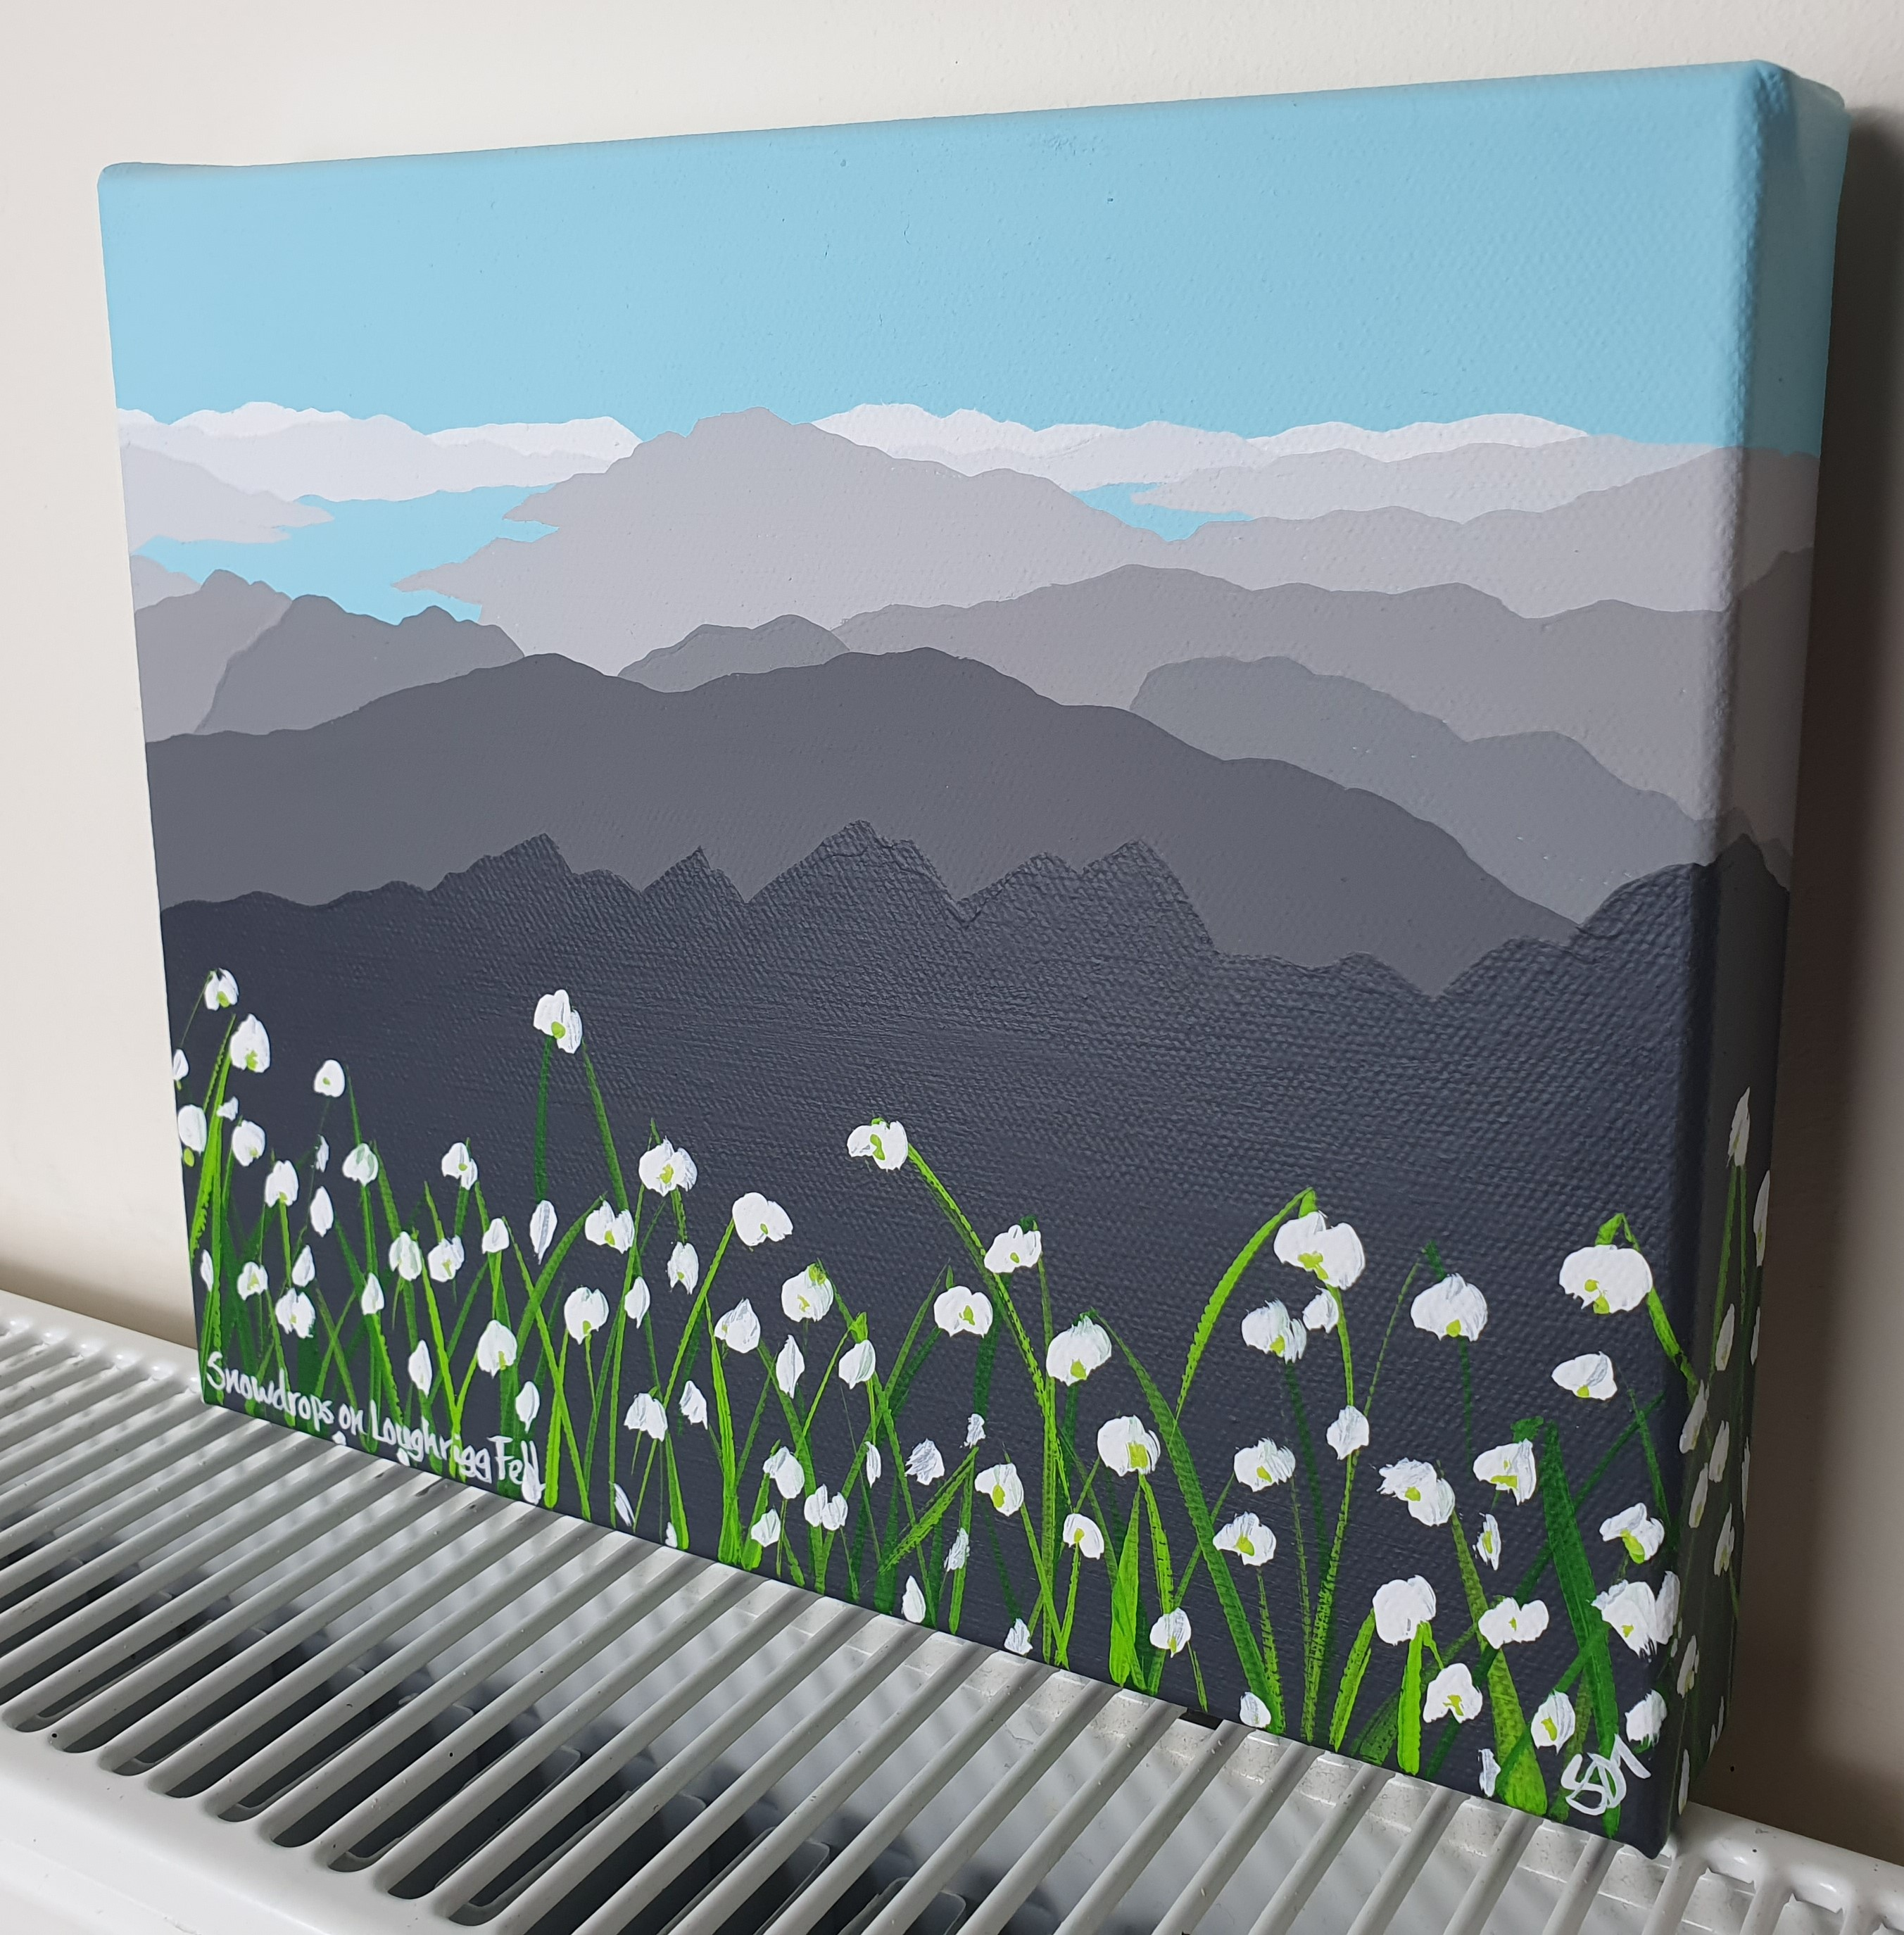 SOLD Snowdrops on Loughrigg Fell